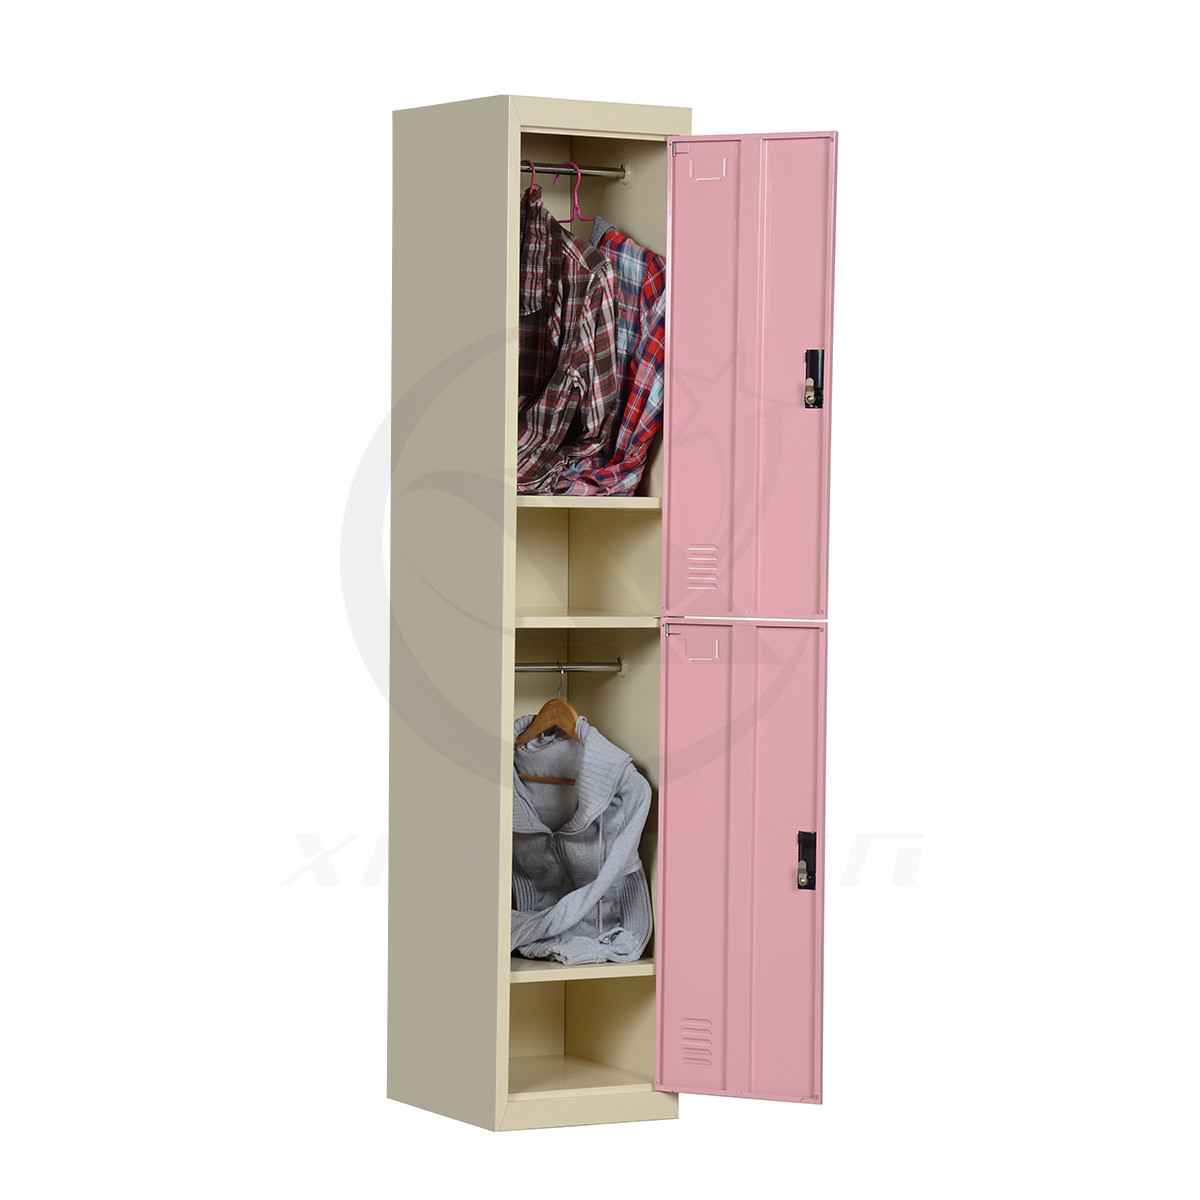 Space saving favorable price 2 door clothes locker